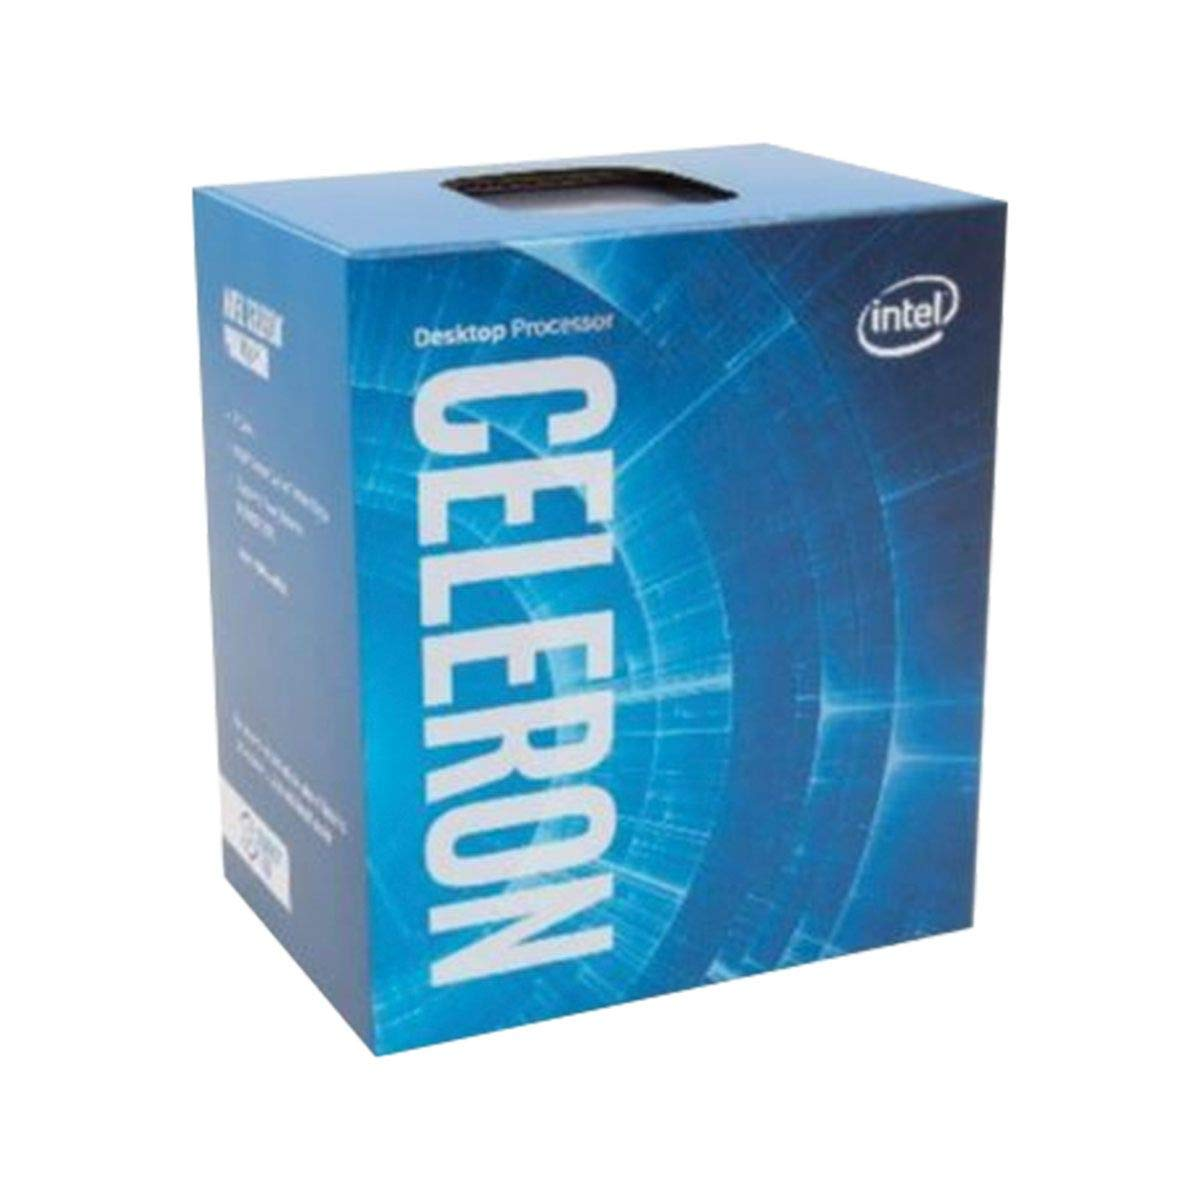 Intel BX80677G3930 7th Gen Celeron Desktop Processors